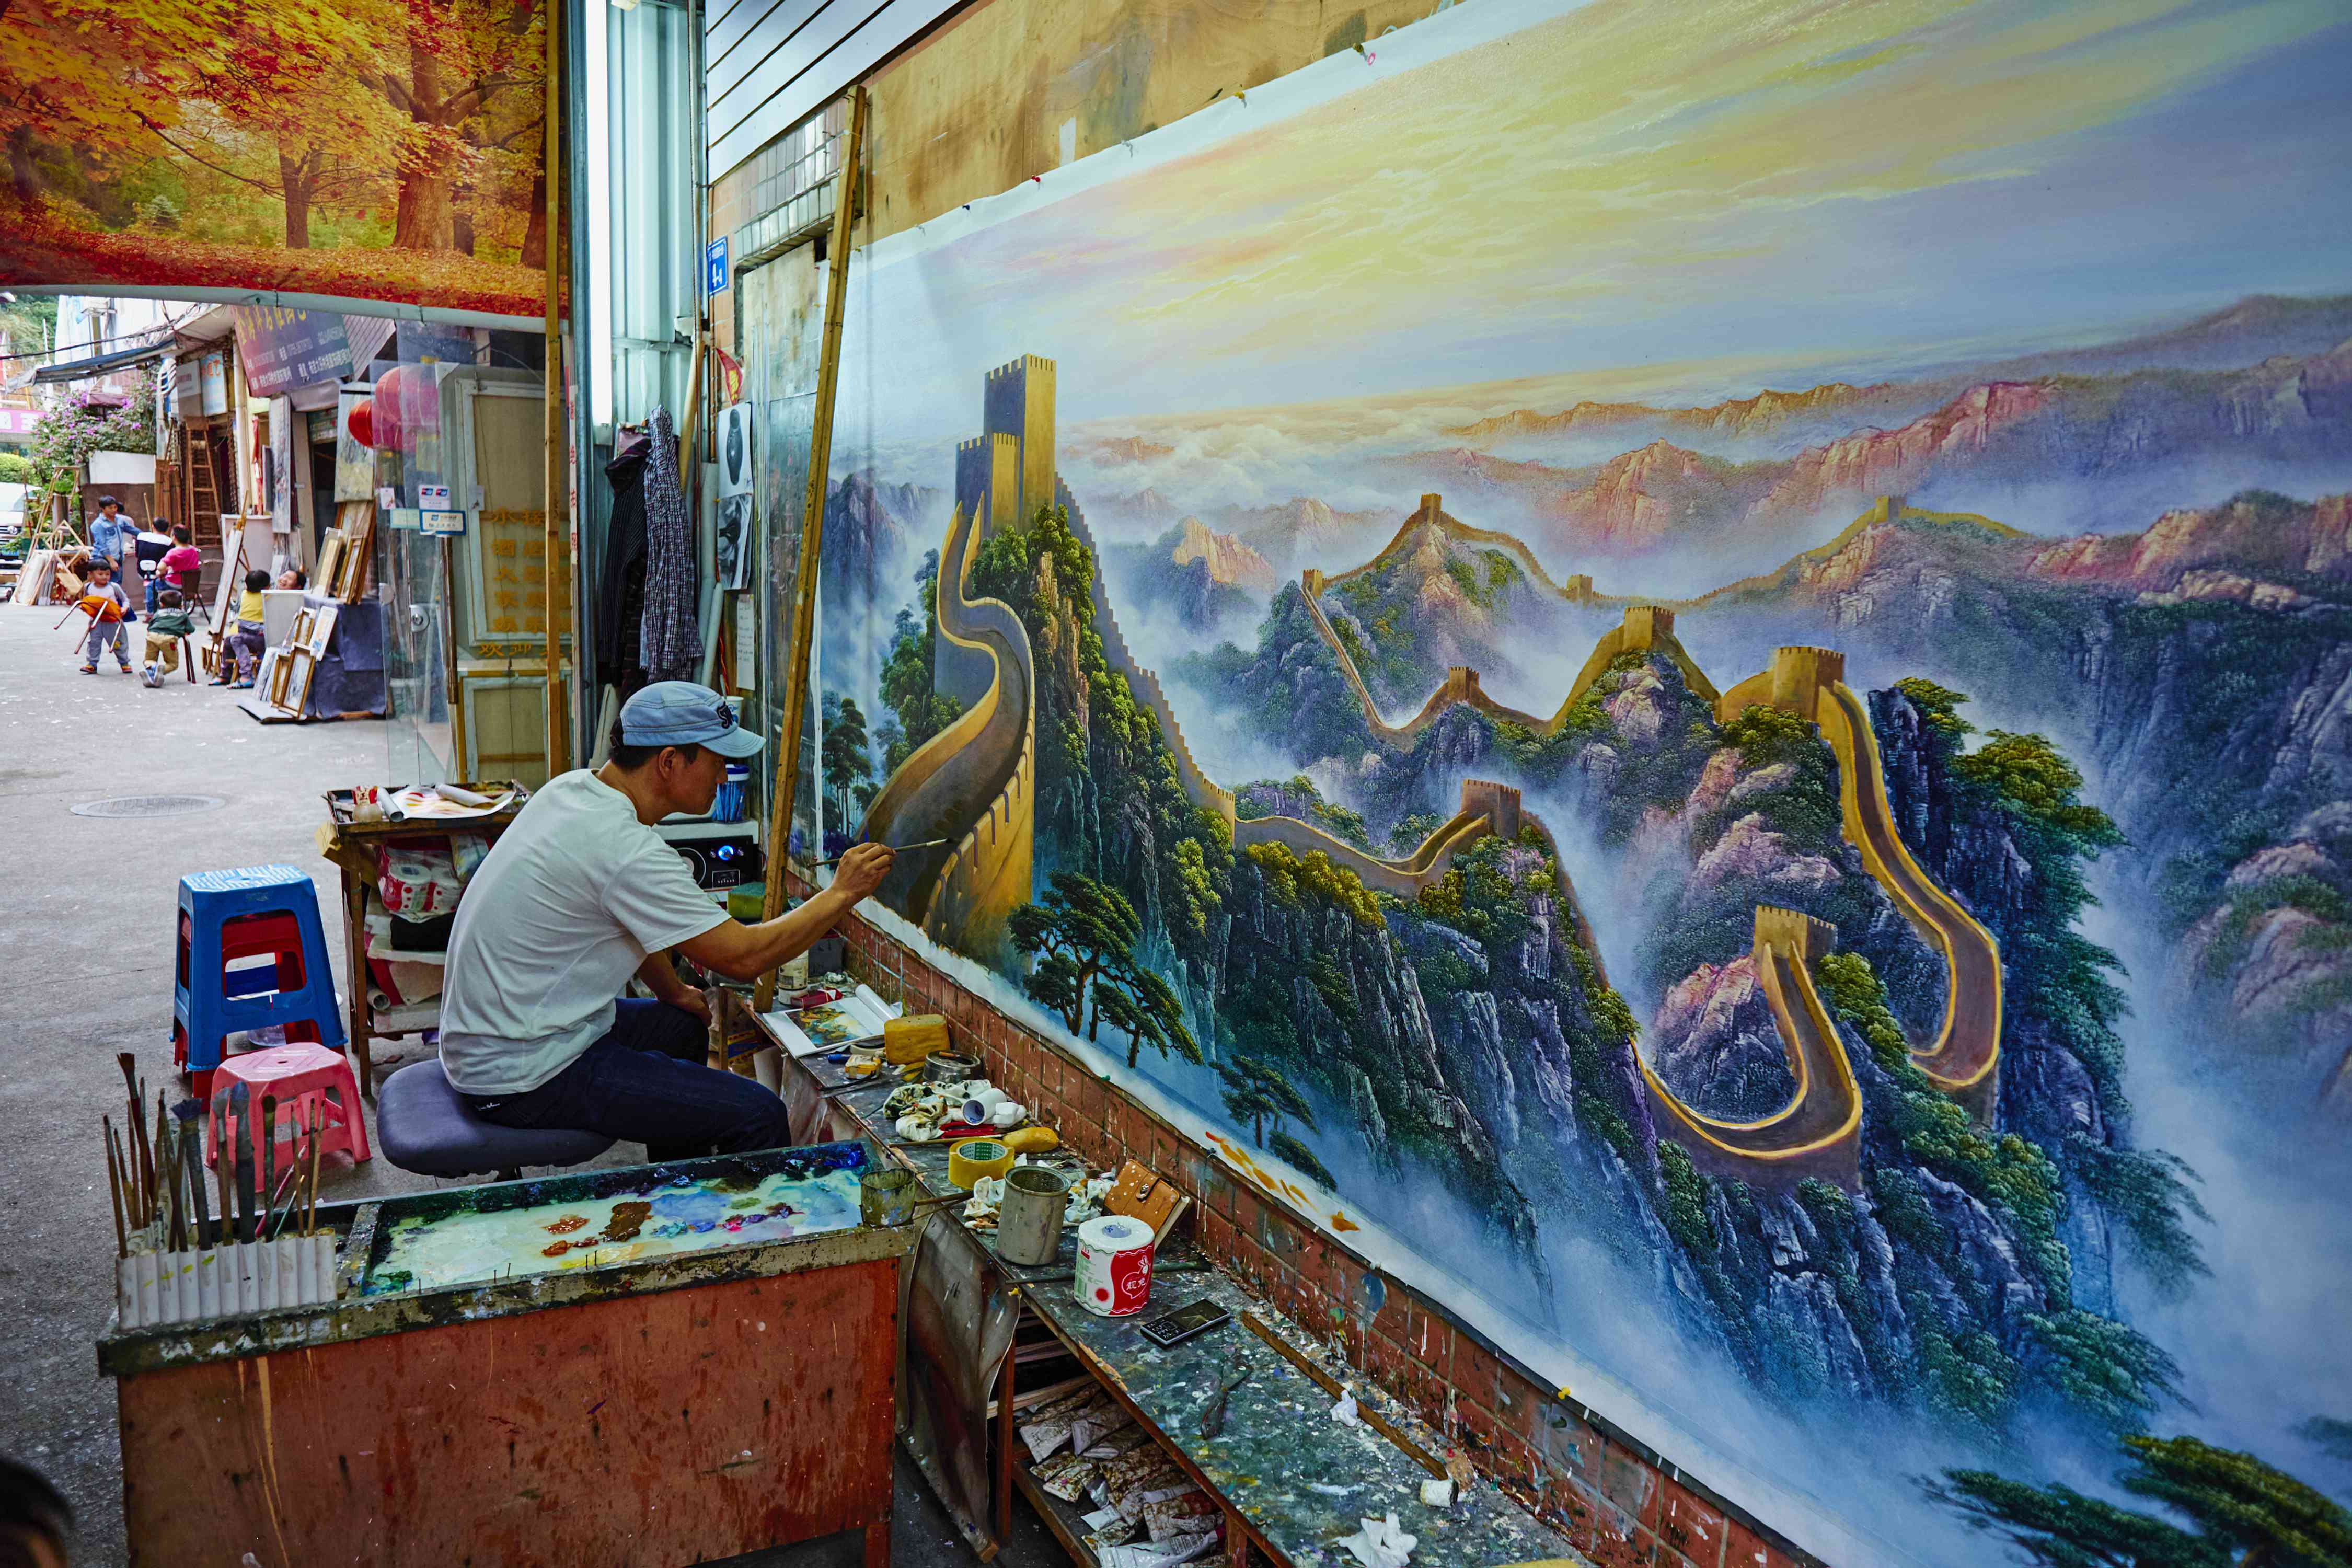 An artist painting mural of the Great Wall of China in Da Fen Village, Shenzen